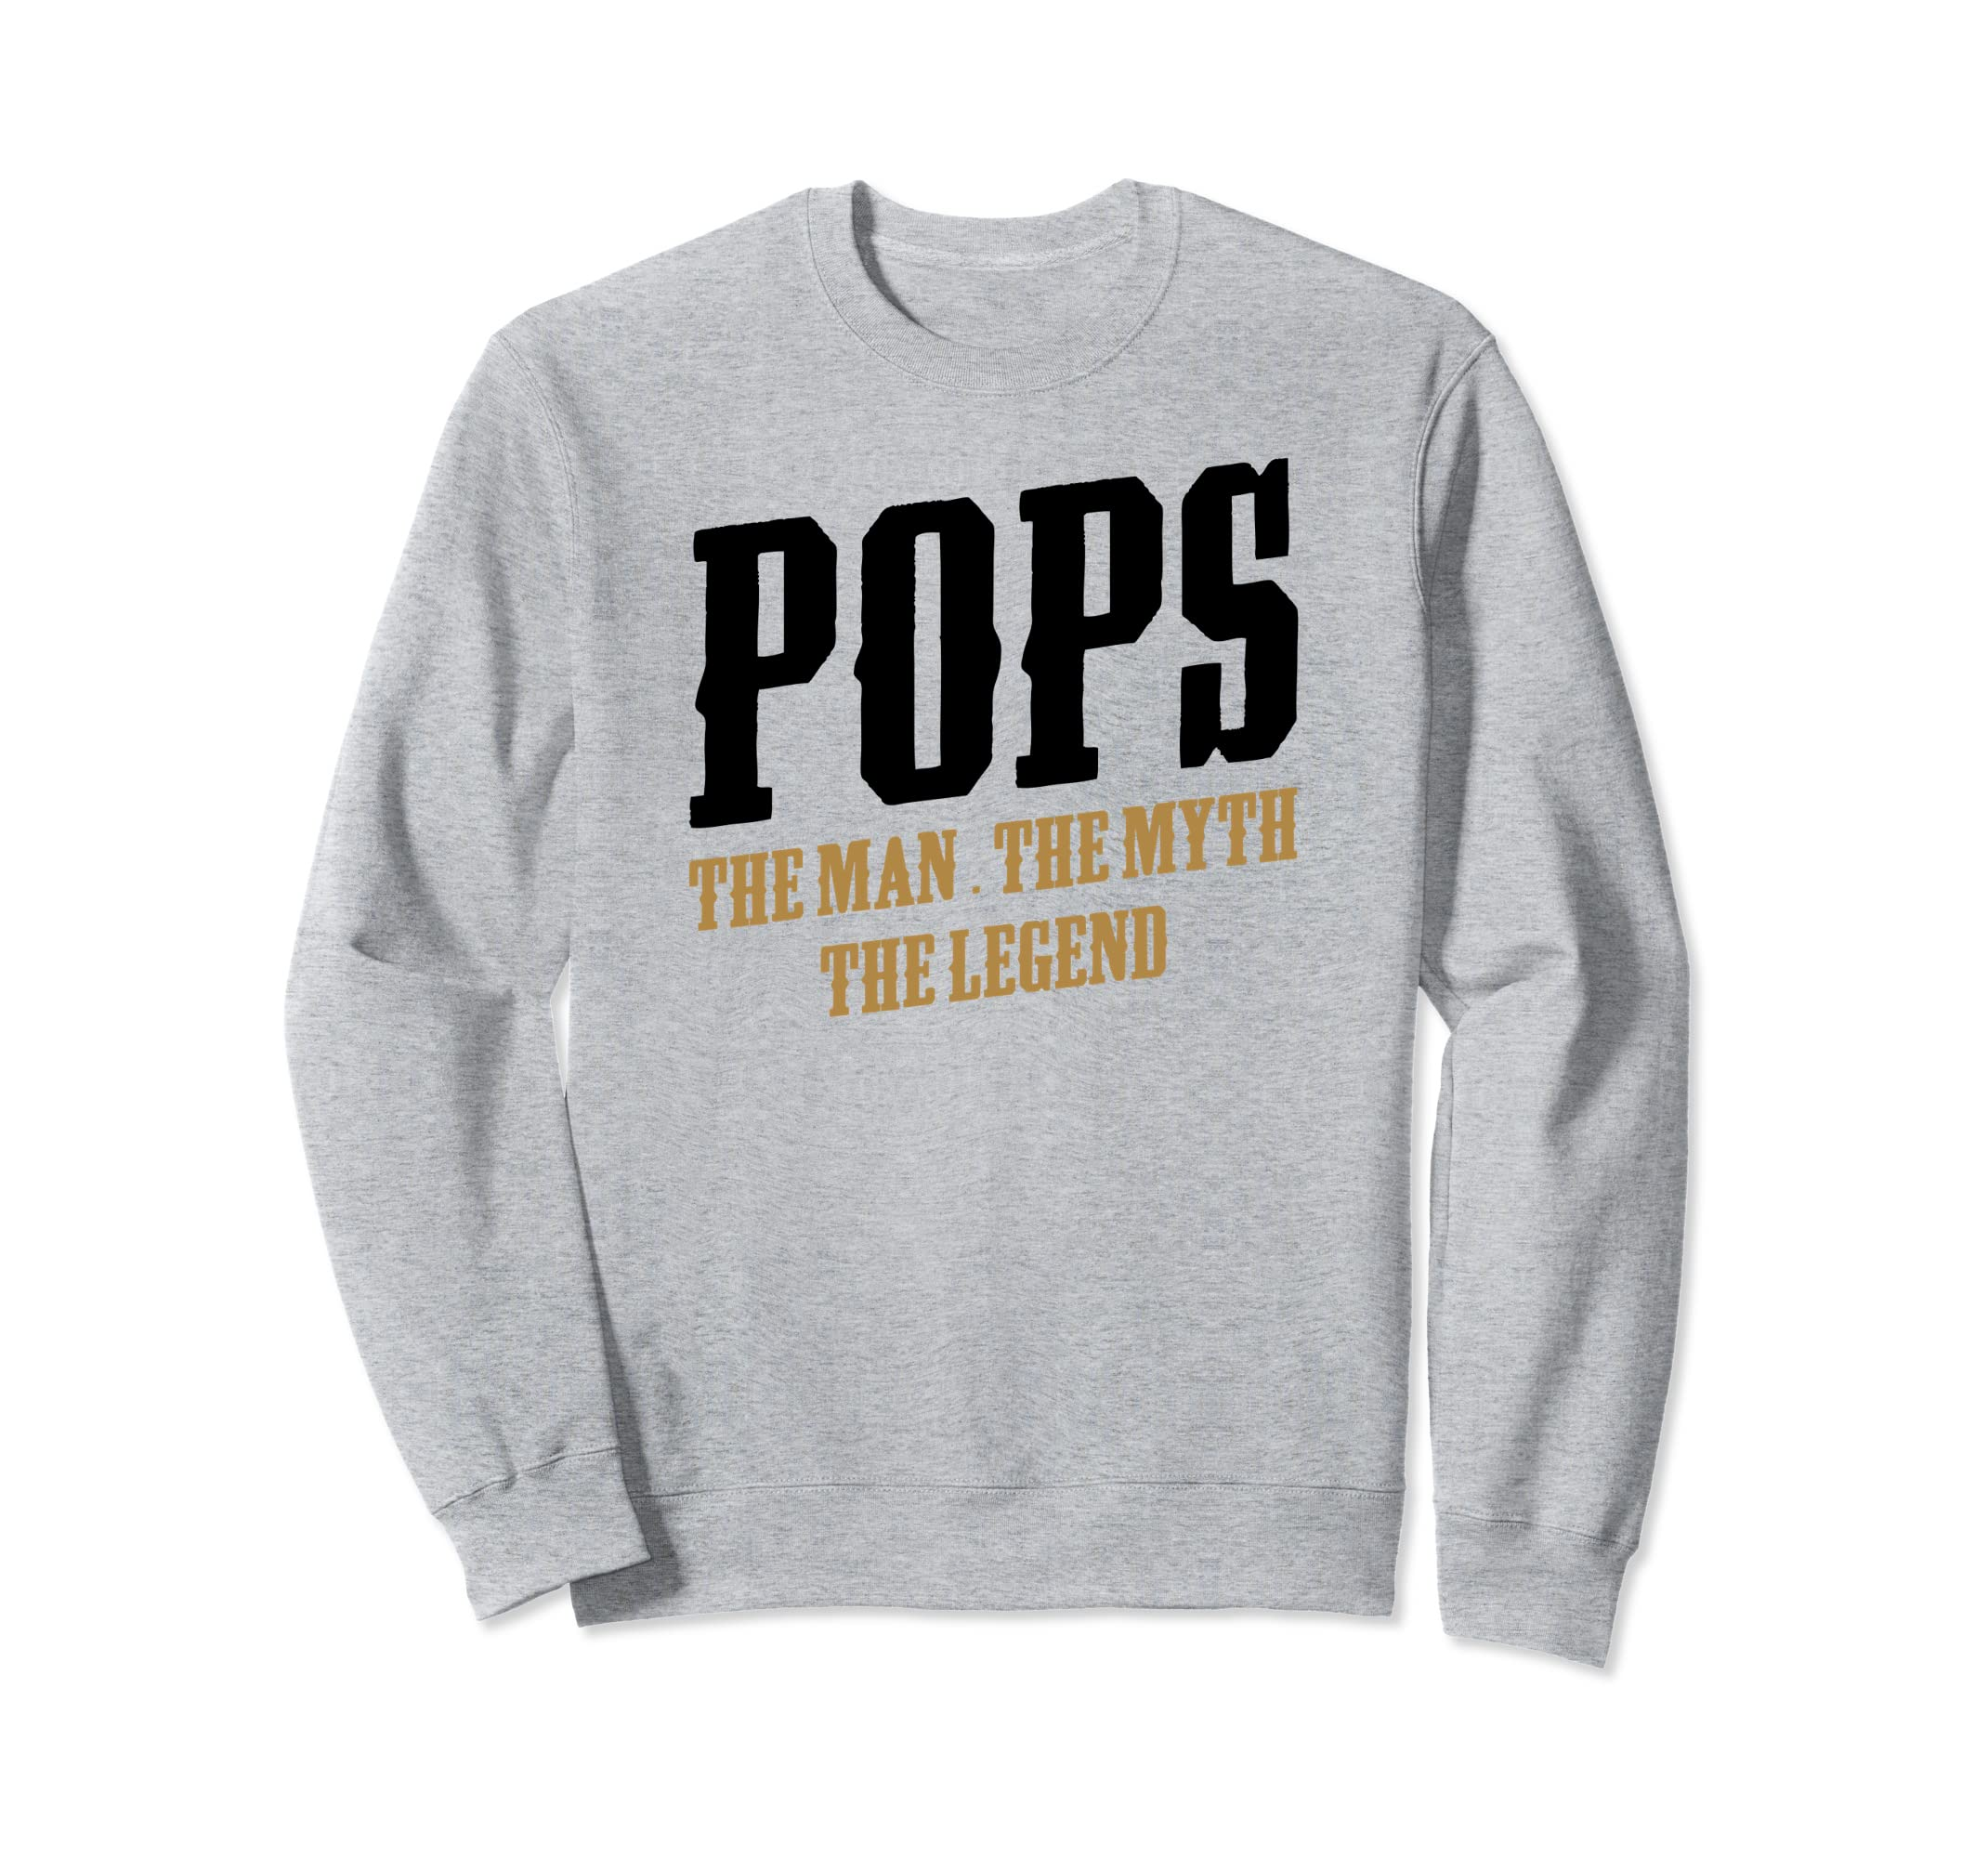 11d915f64 Amazon.com: Pops The Man The Myth The Legend Funny Dad Gift Sweatshirt:  Clothing